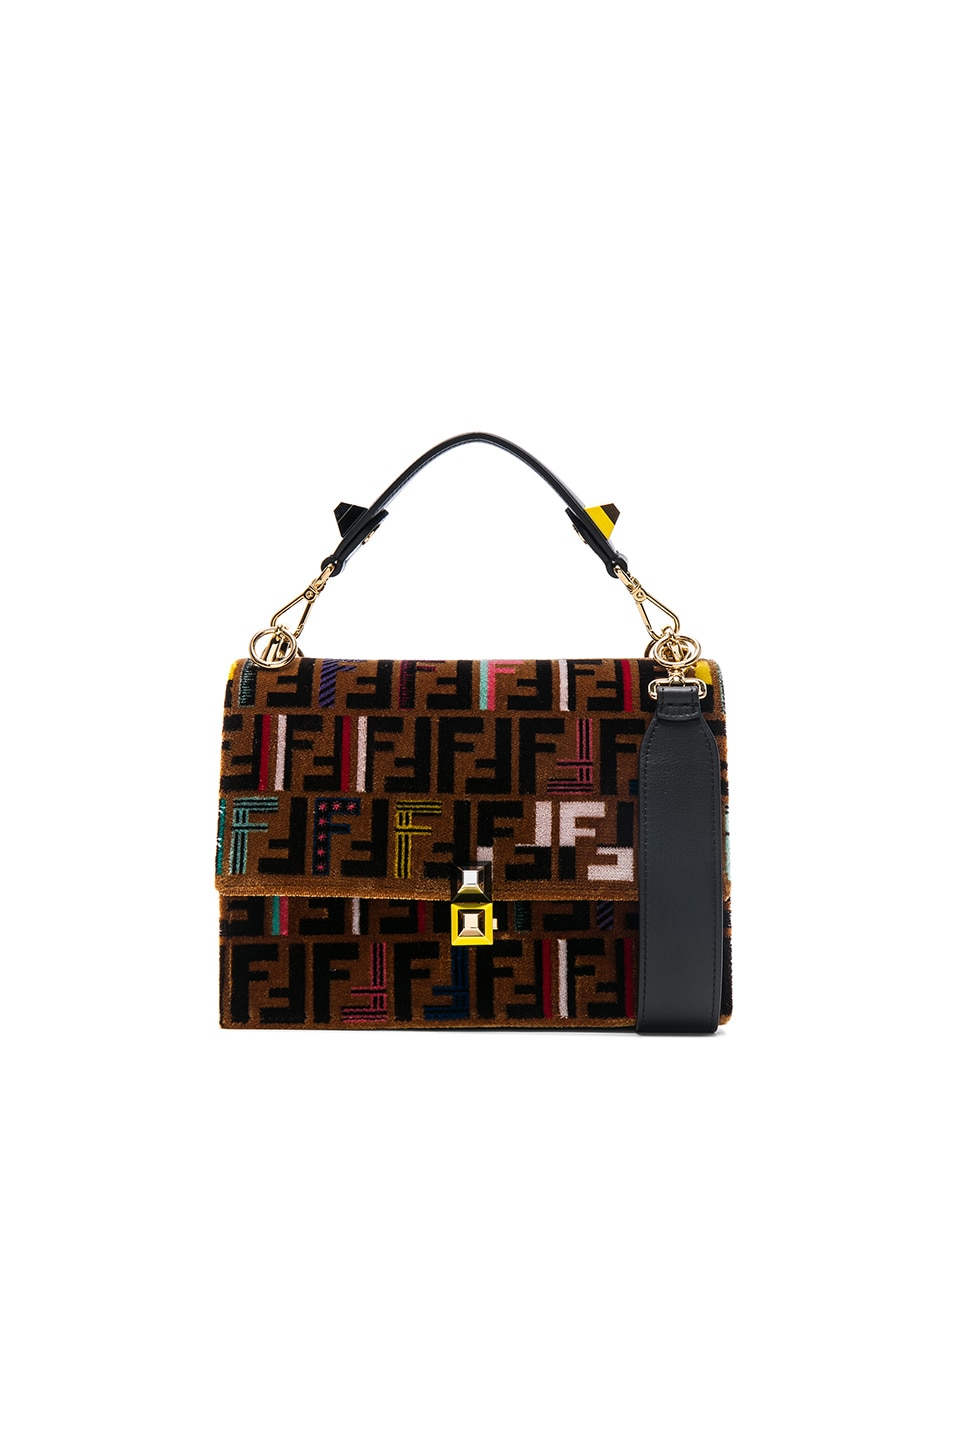 acfab9a2dae Image 1 of Fendi FF Embroidered Kan I in Tobacco, Multicolor   Black